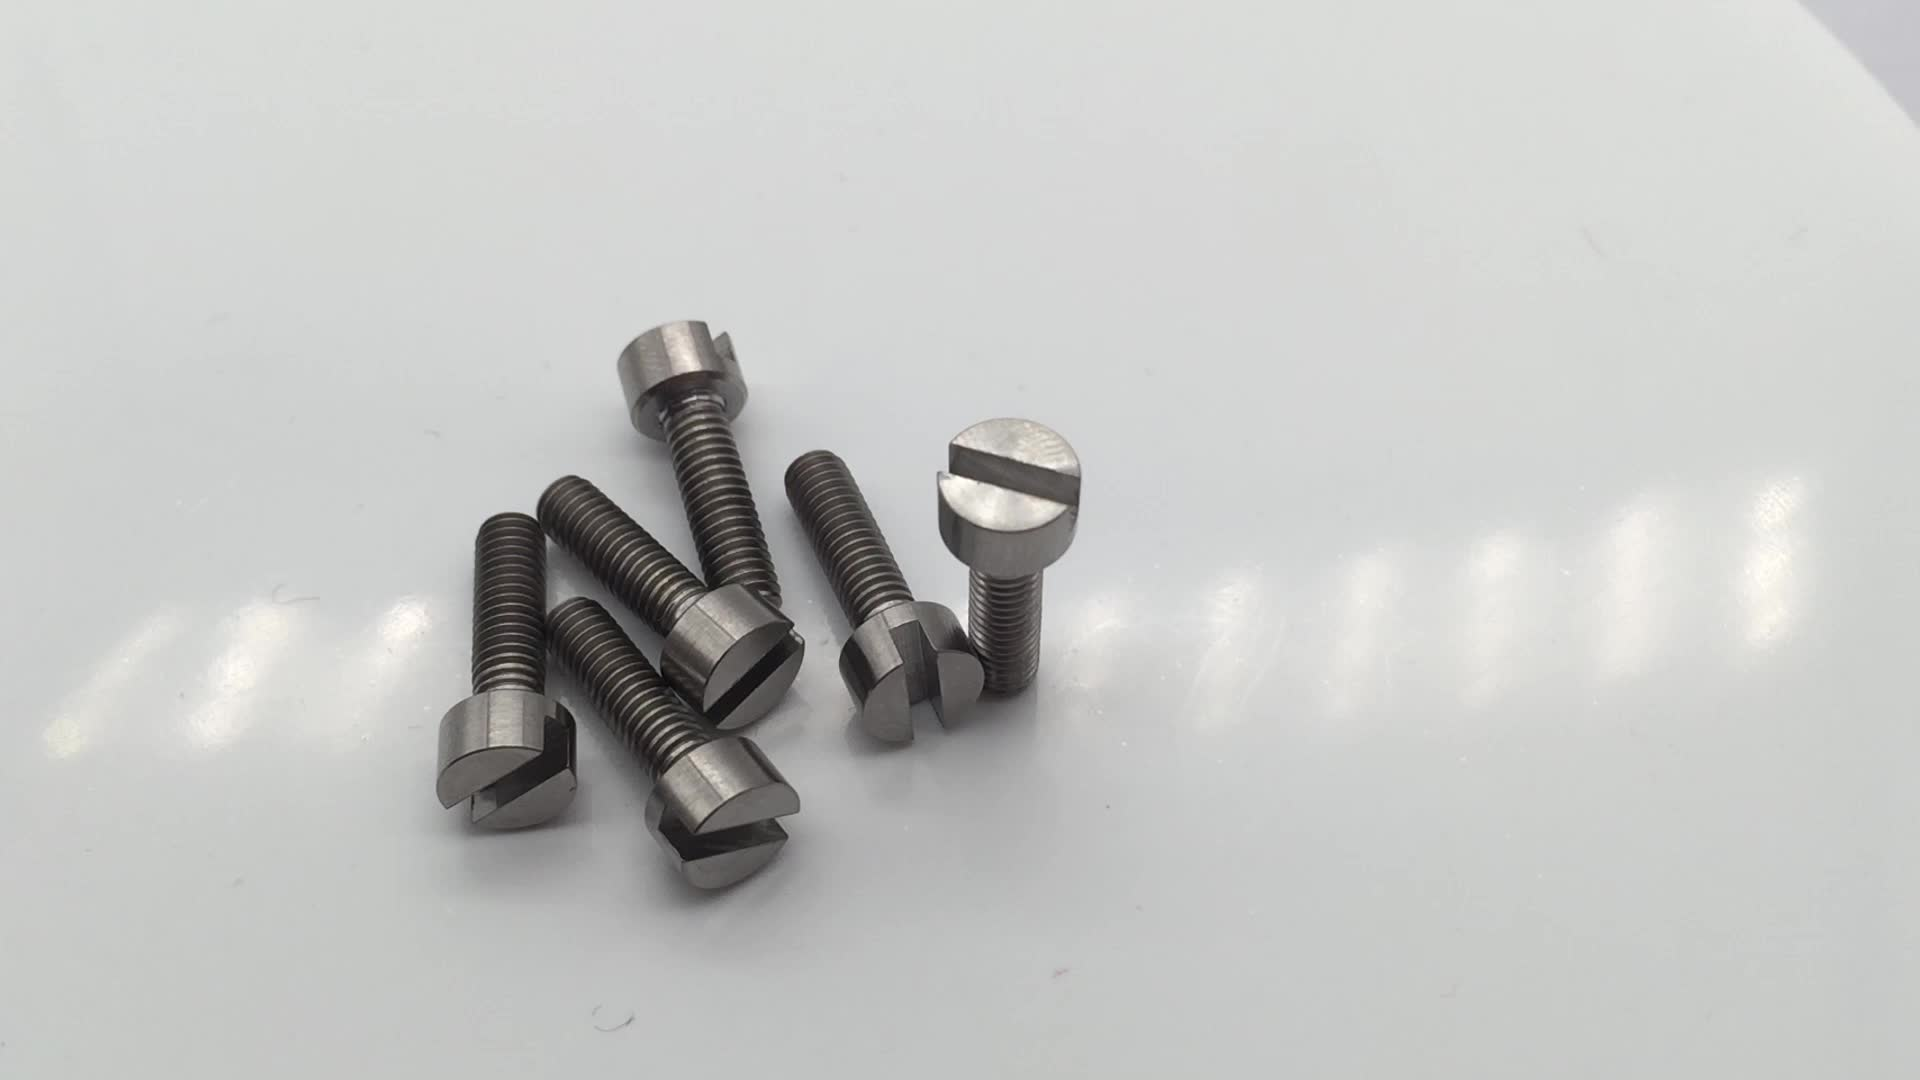 DIN84 GR5 titanium slotted head screws M4 M6 M8